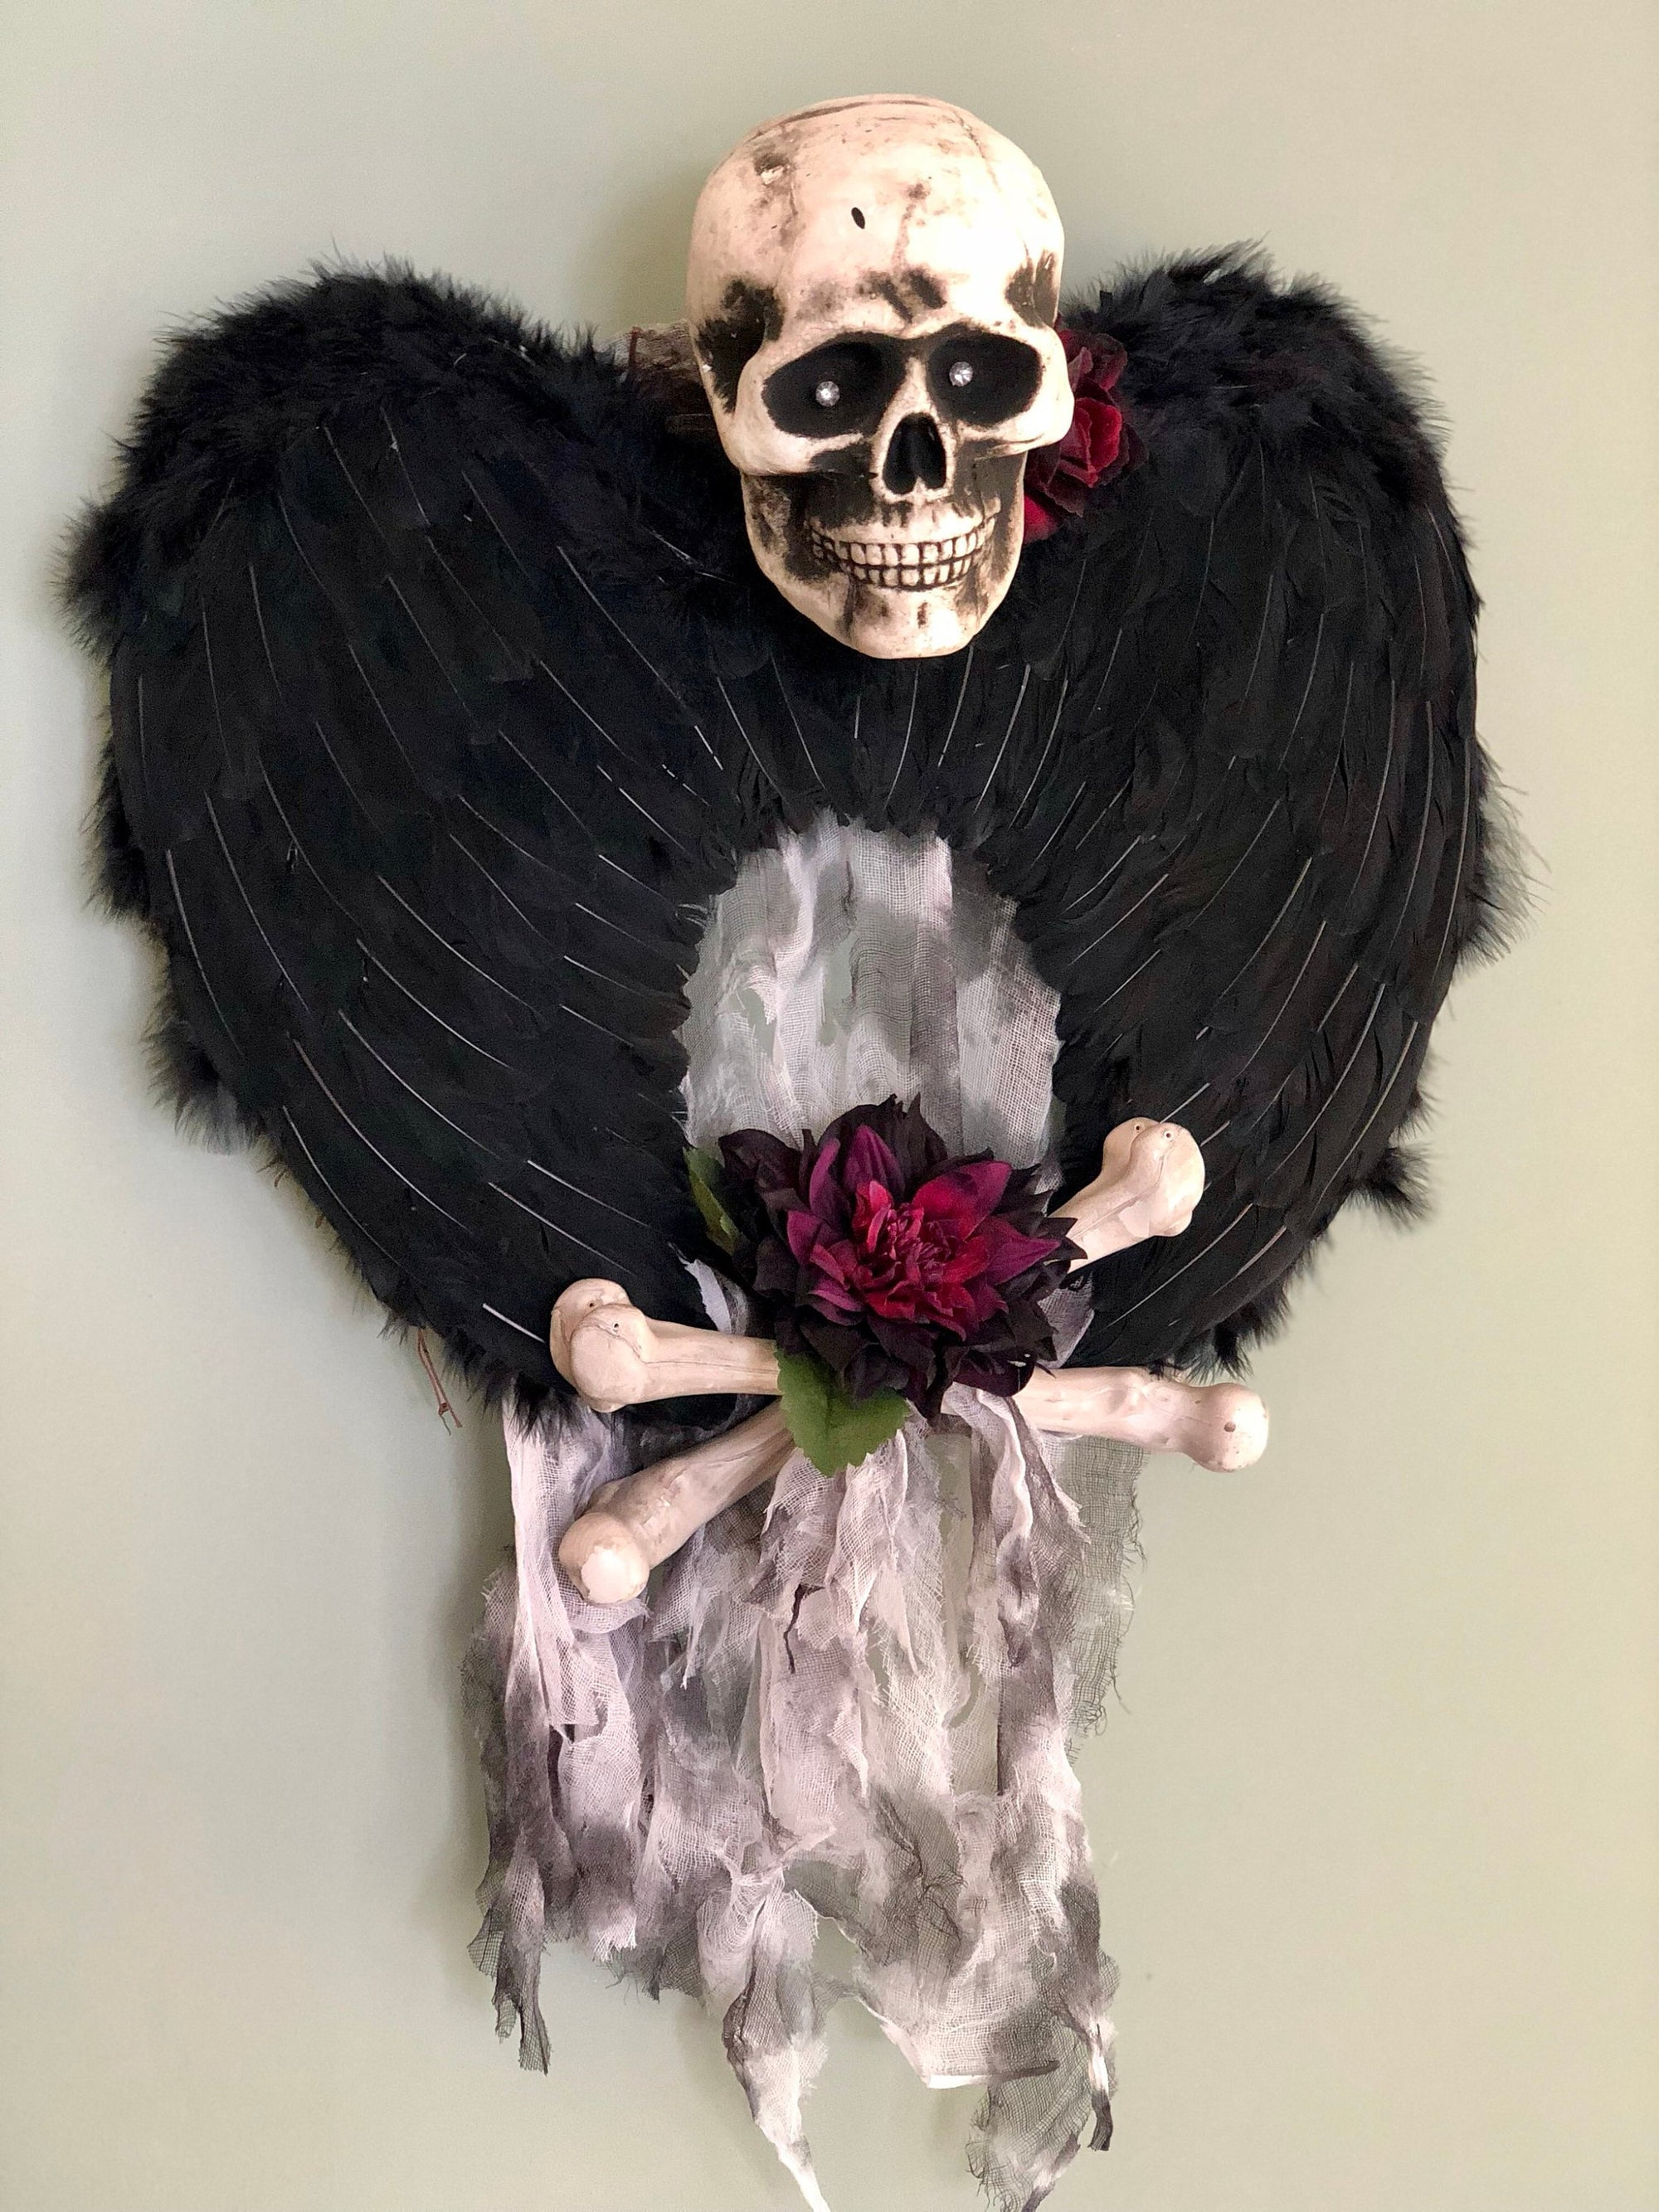 The Ozzy Angel Of Death Halloween Wreath for front door~Skull & crossbones wreath~grim reaper wreath~all hallows eve skeleton wreath~skull